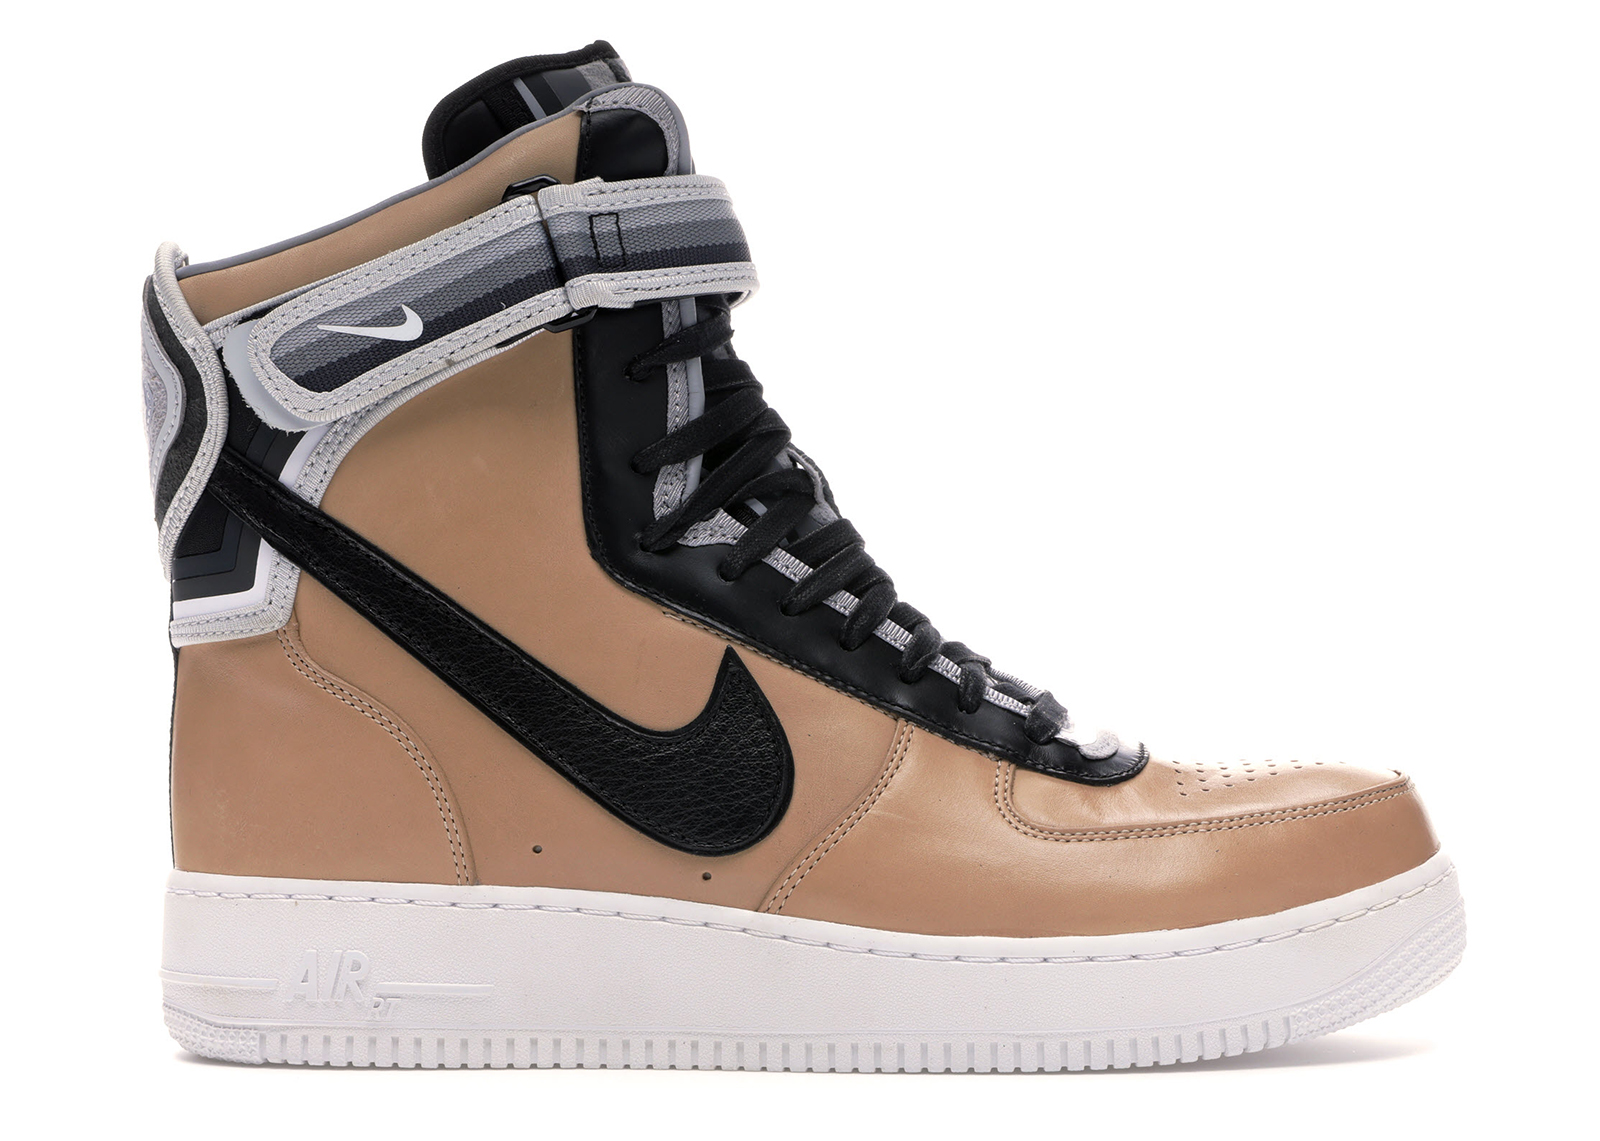 Air Force 1 High Tisci Tan